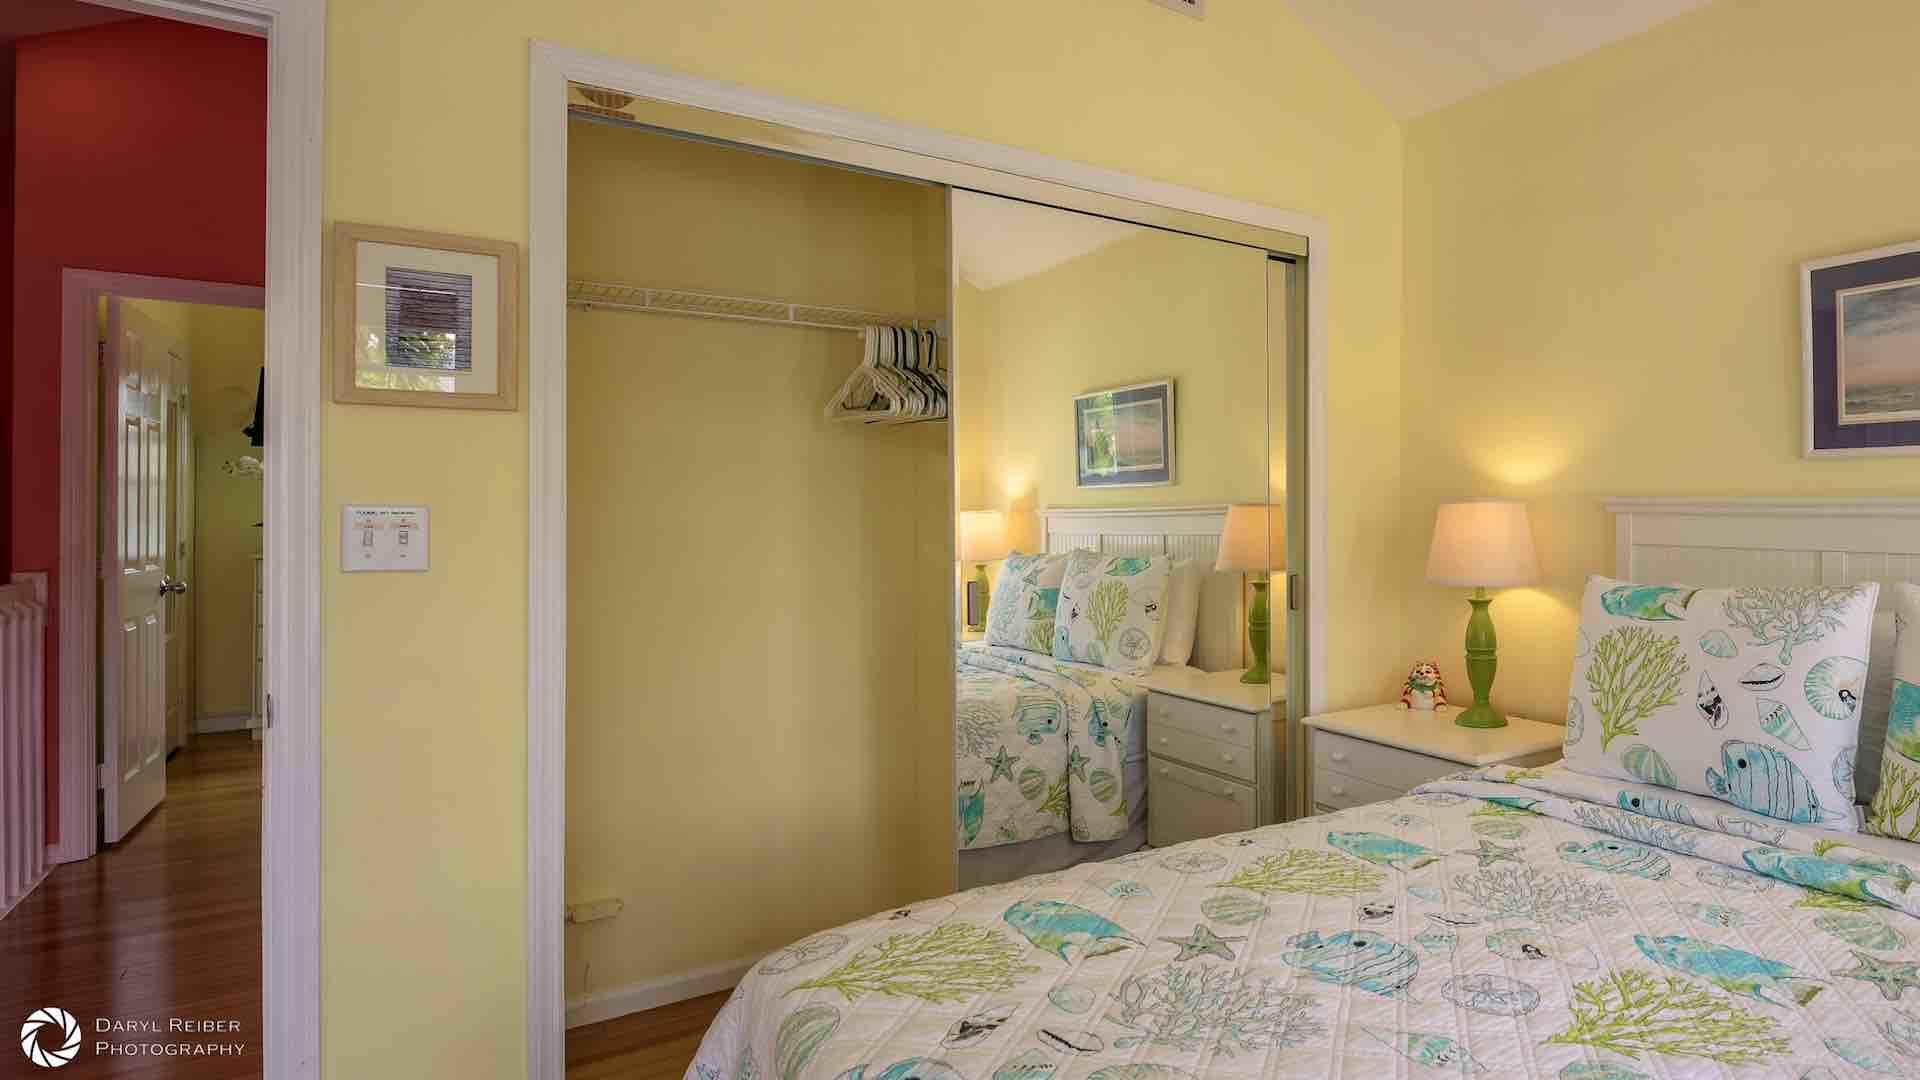 The master bedroom has a large closet...